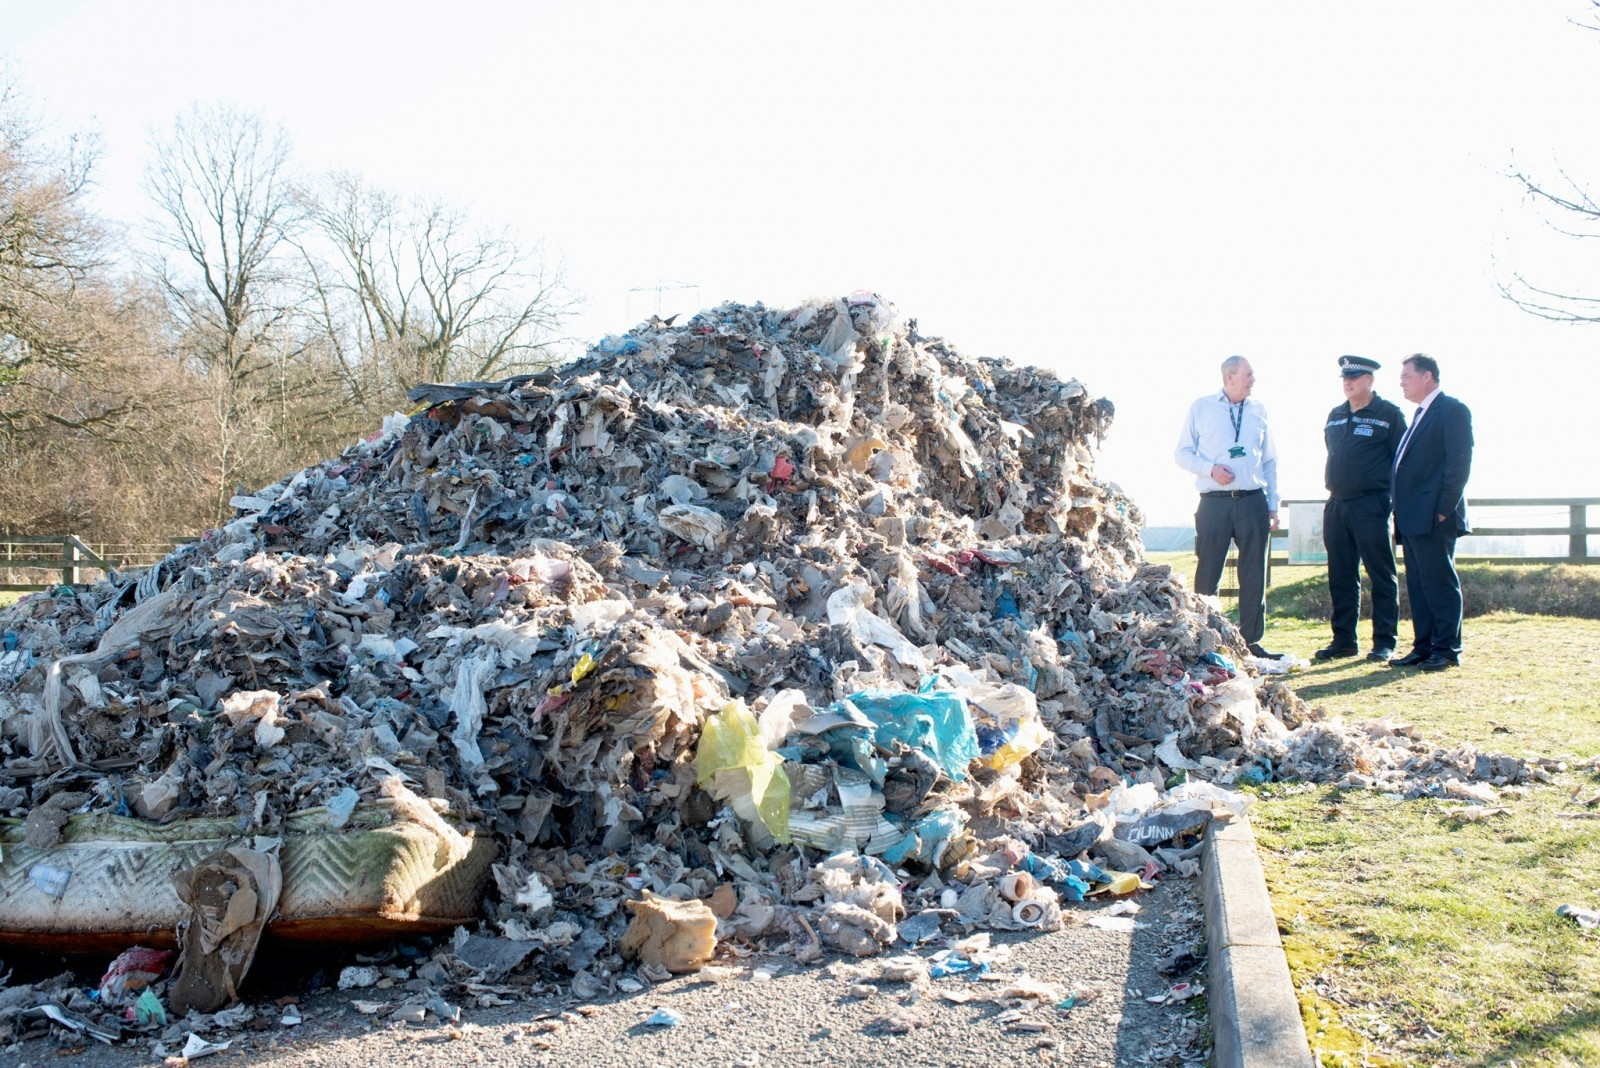 Shocking Pictures Show Huge Mounds Of Fly-Tipped Waste Weighing The Same As EIGHT Elephants